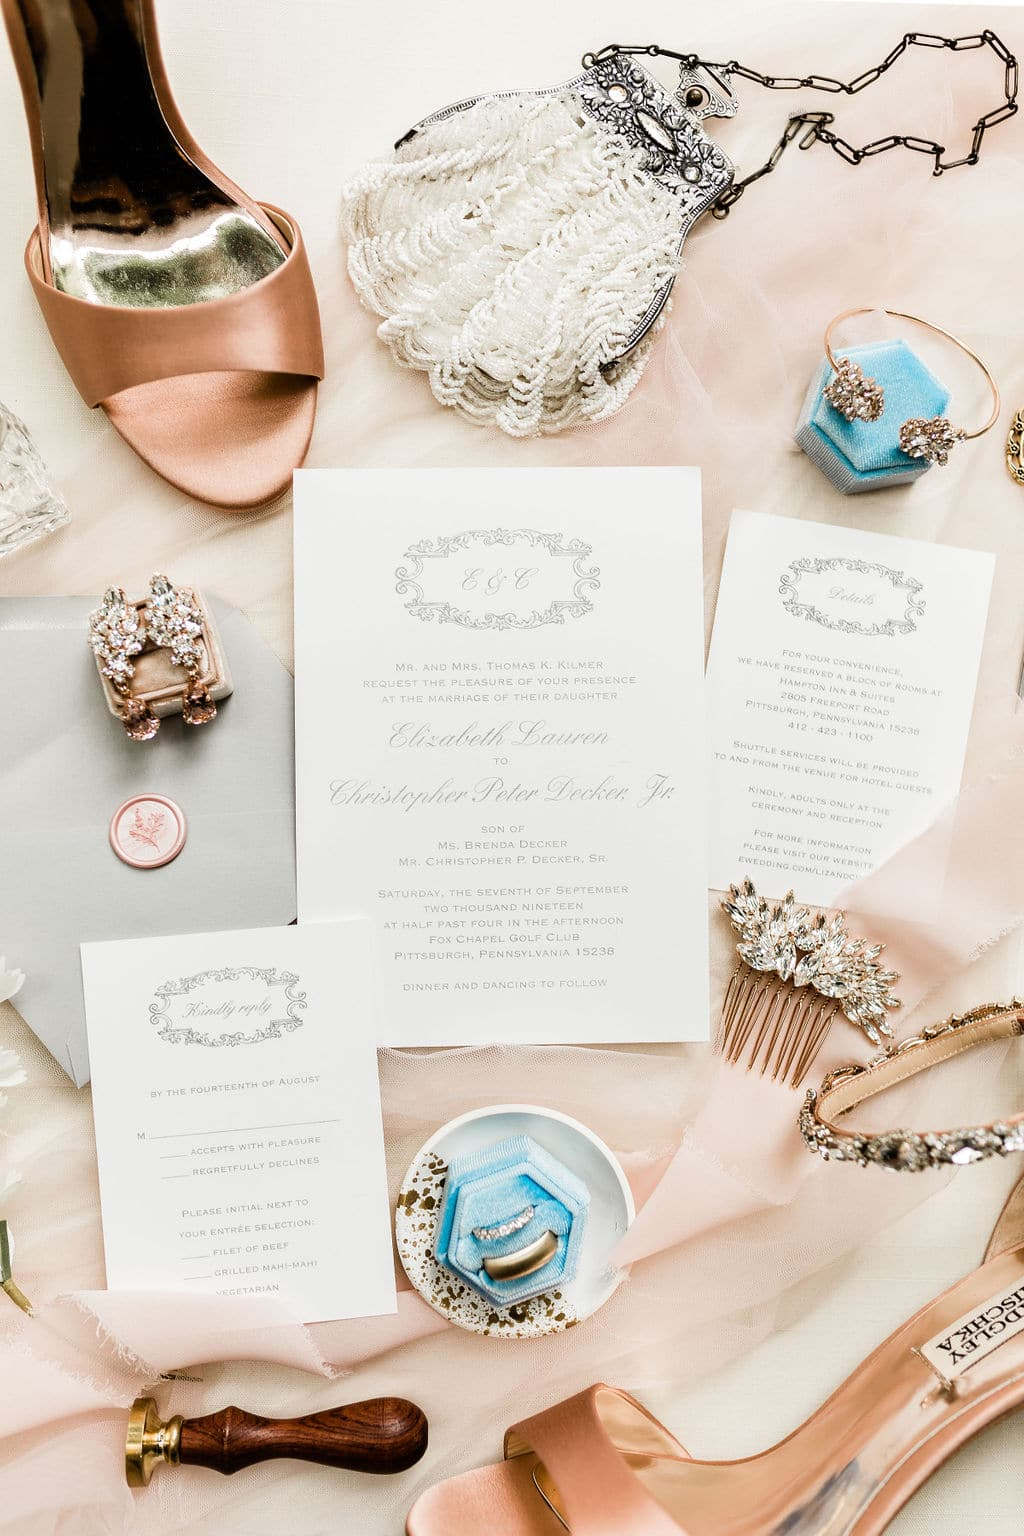 accessories and blue box with bride's ring with invitation to ceremony